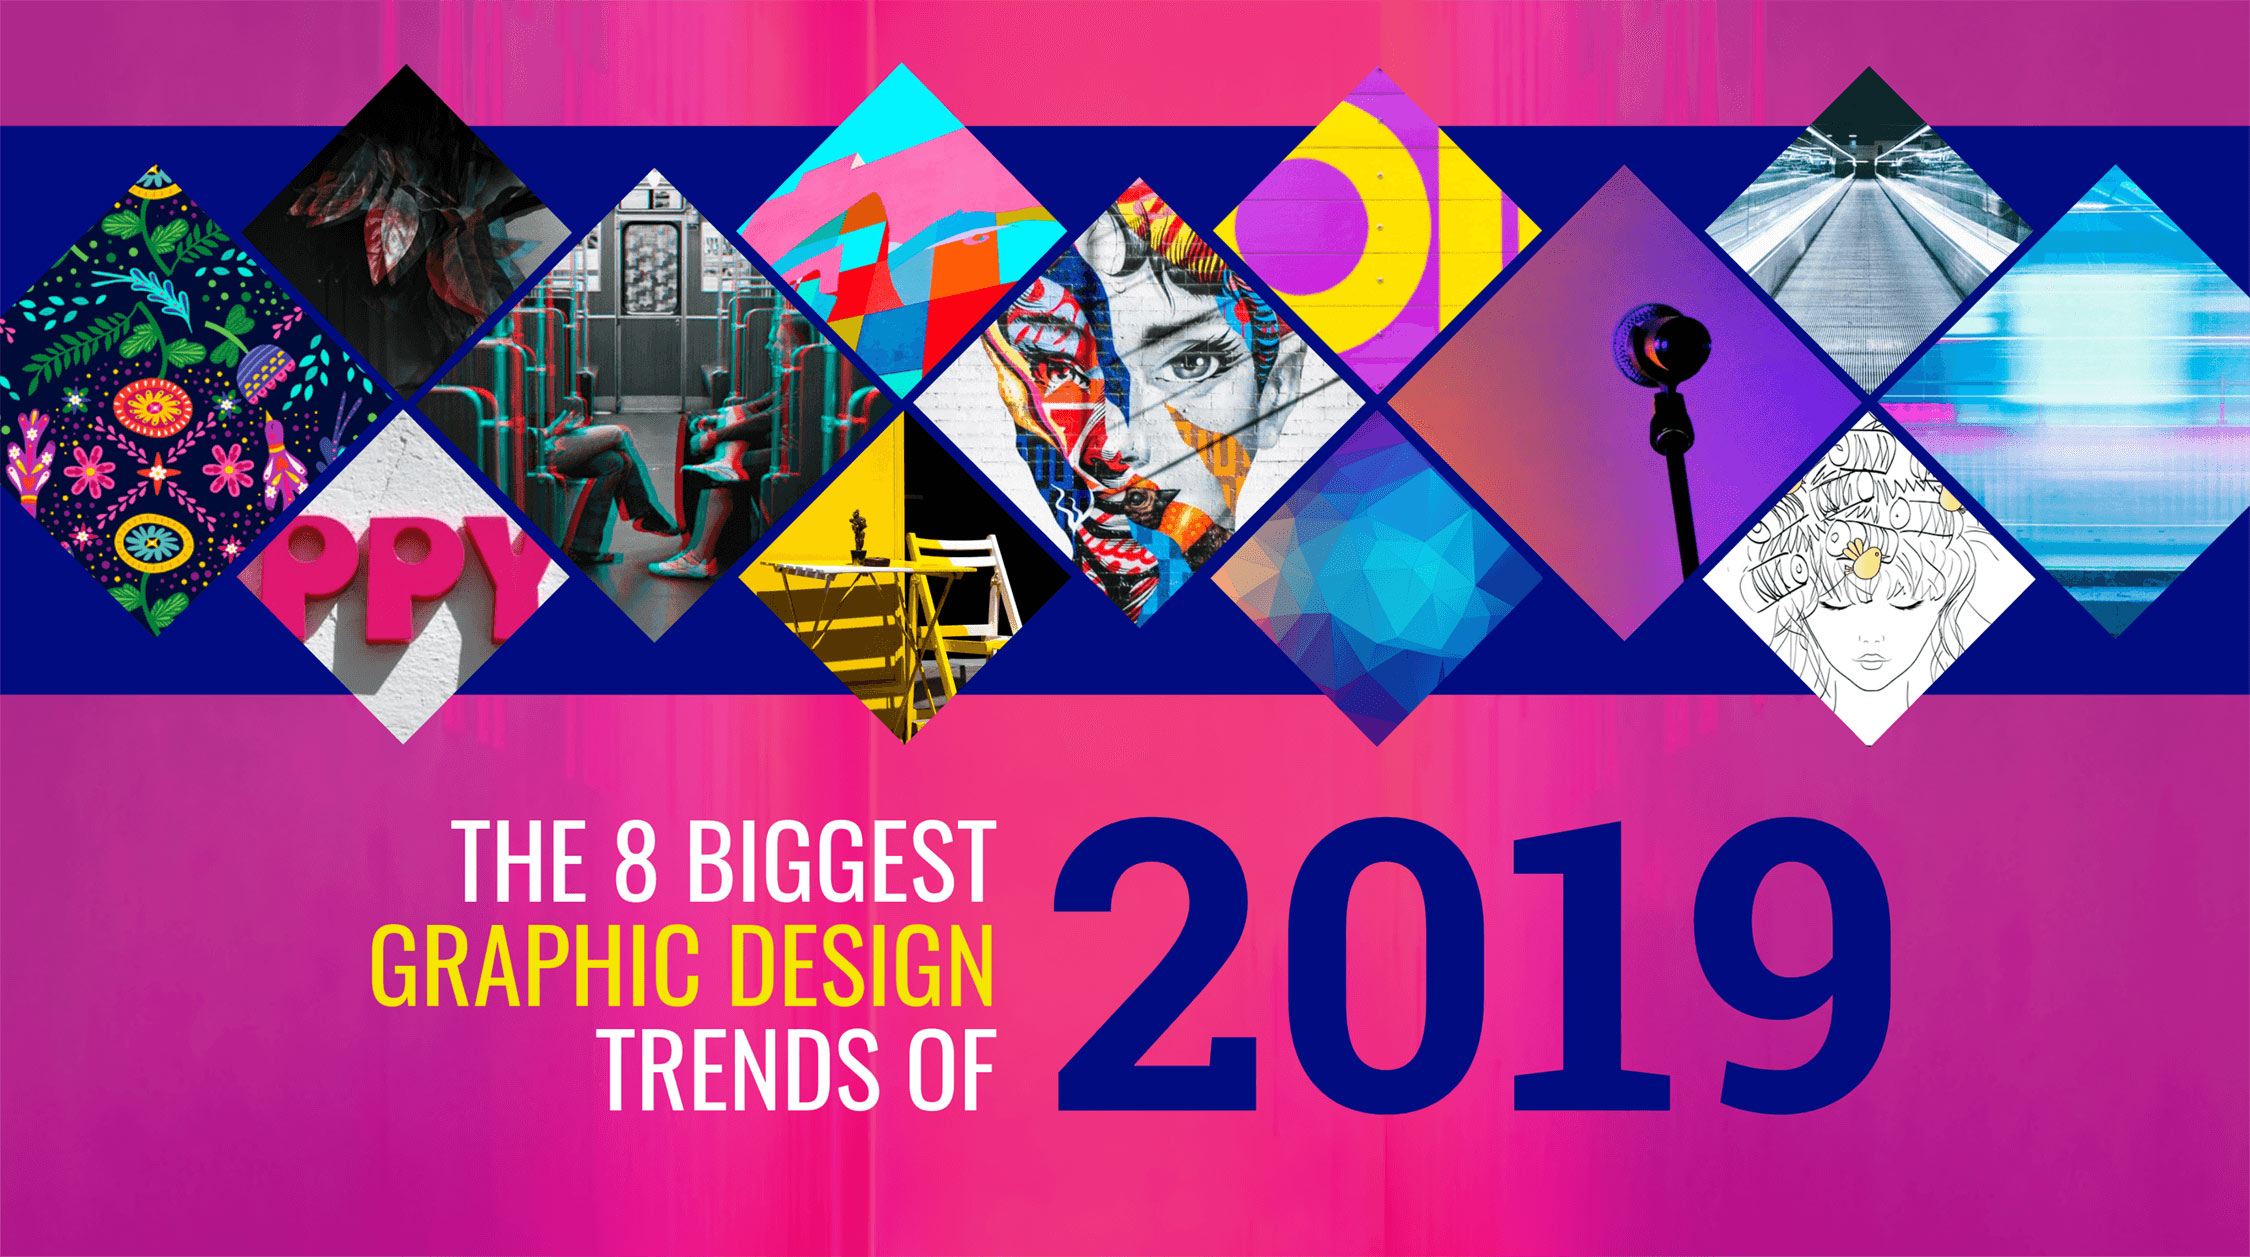 New Graphic Design Trends: 14 Visual Content Marketing Statistics For 2019 [Update]